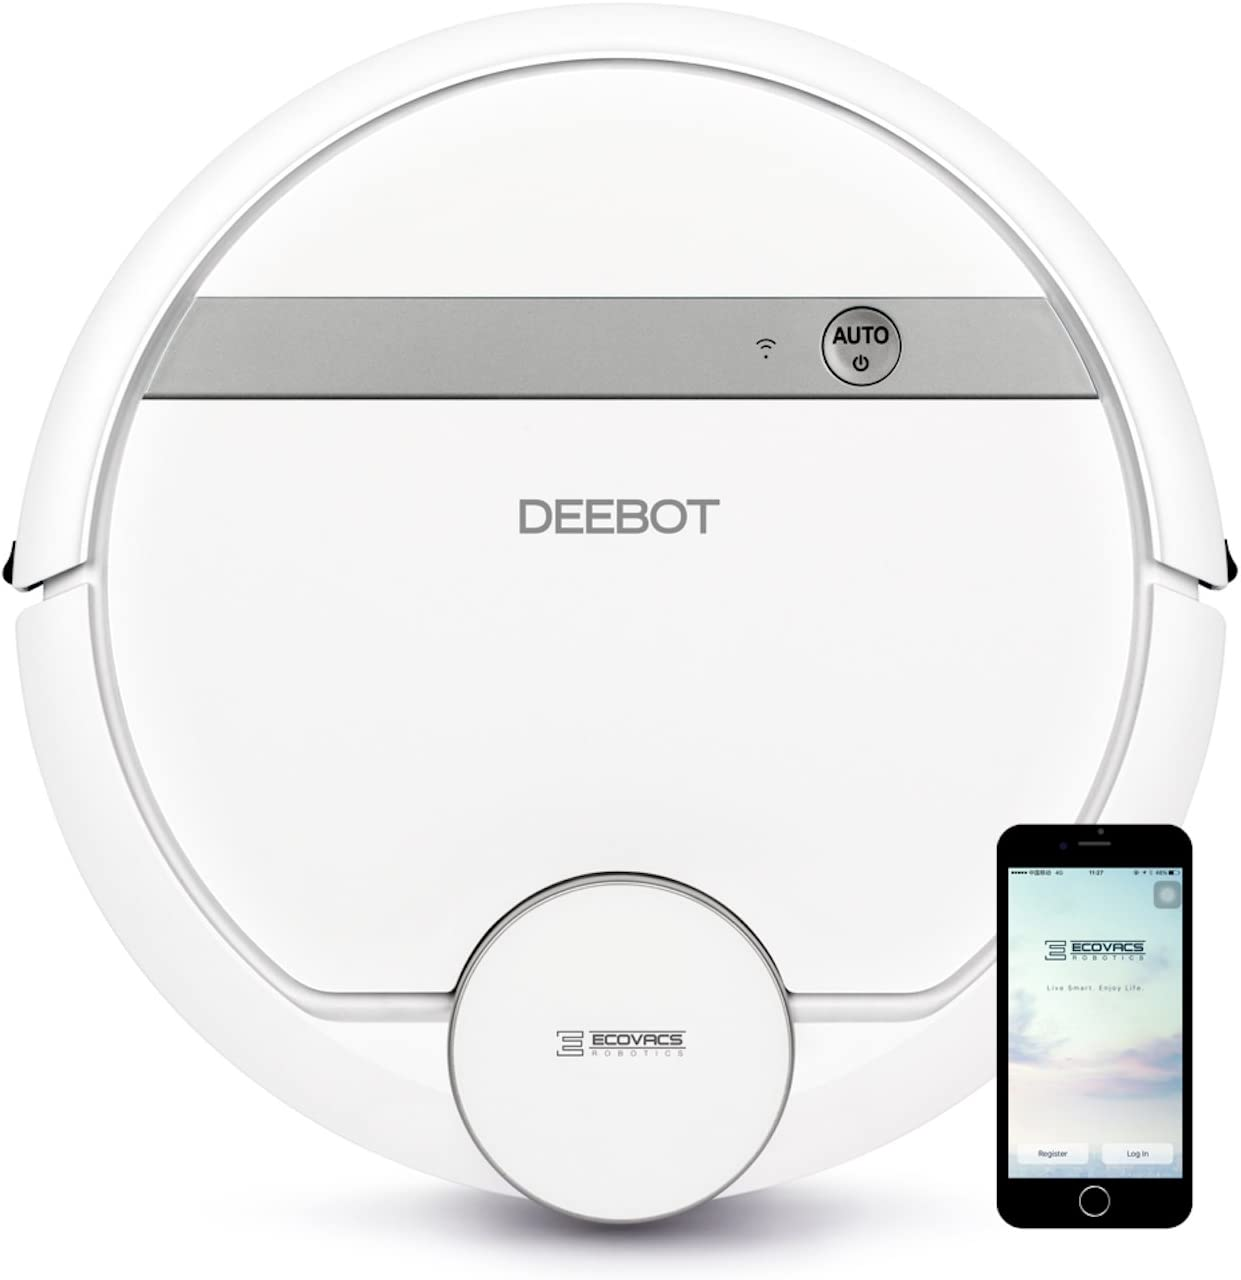 Renewed Mapping Technology with Alexa Google Assistant Pet Hair WiFi Ecovacs DEEBOT 900 Smart Robotic Vacuum High Suction Power Bare Floors Carpet